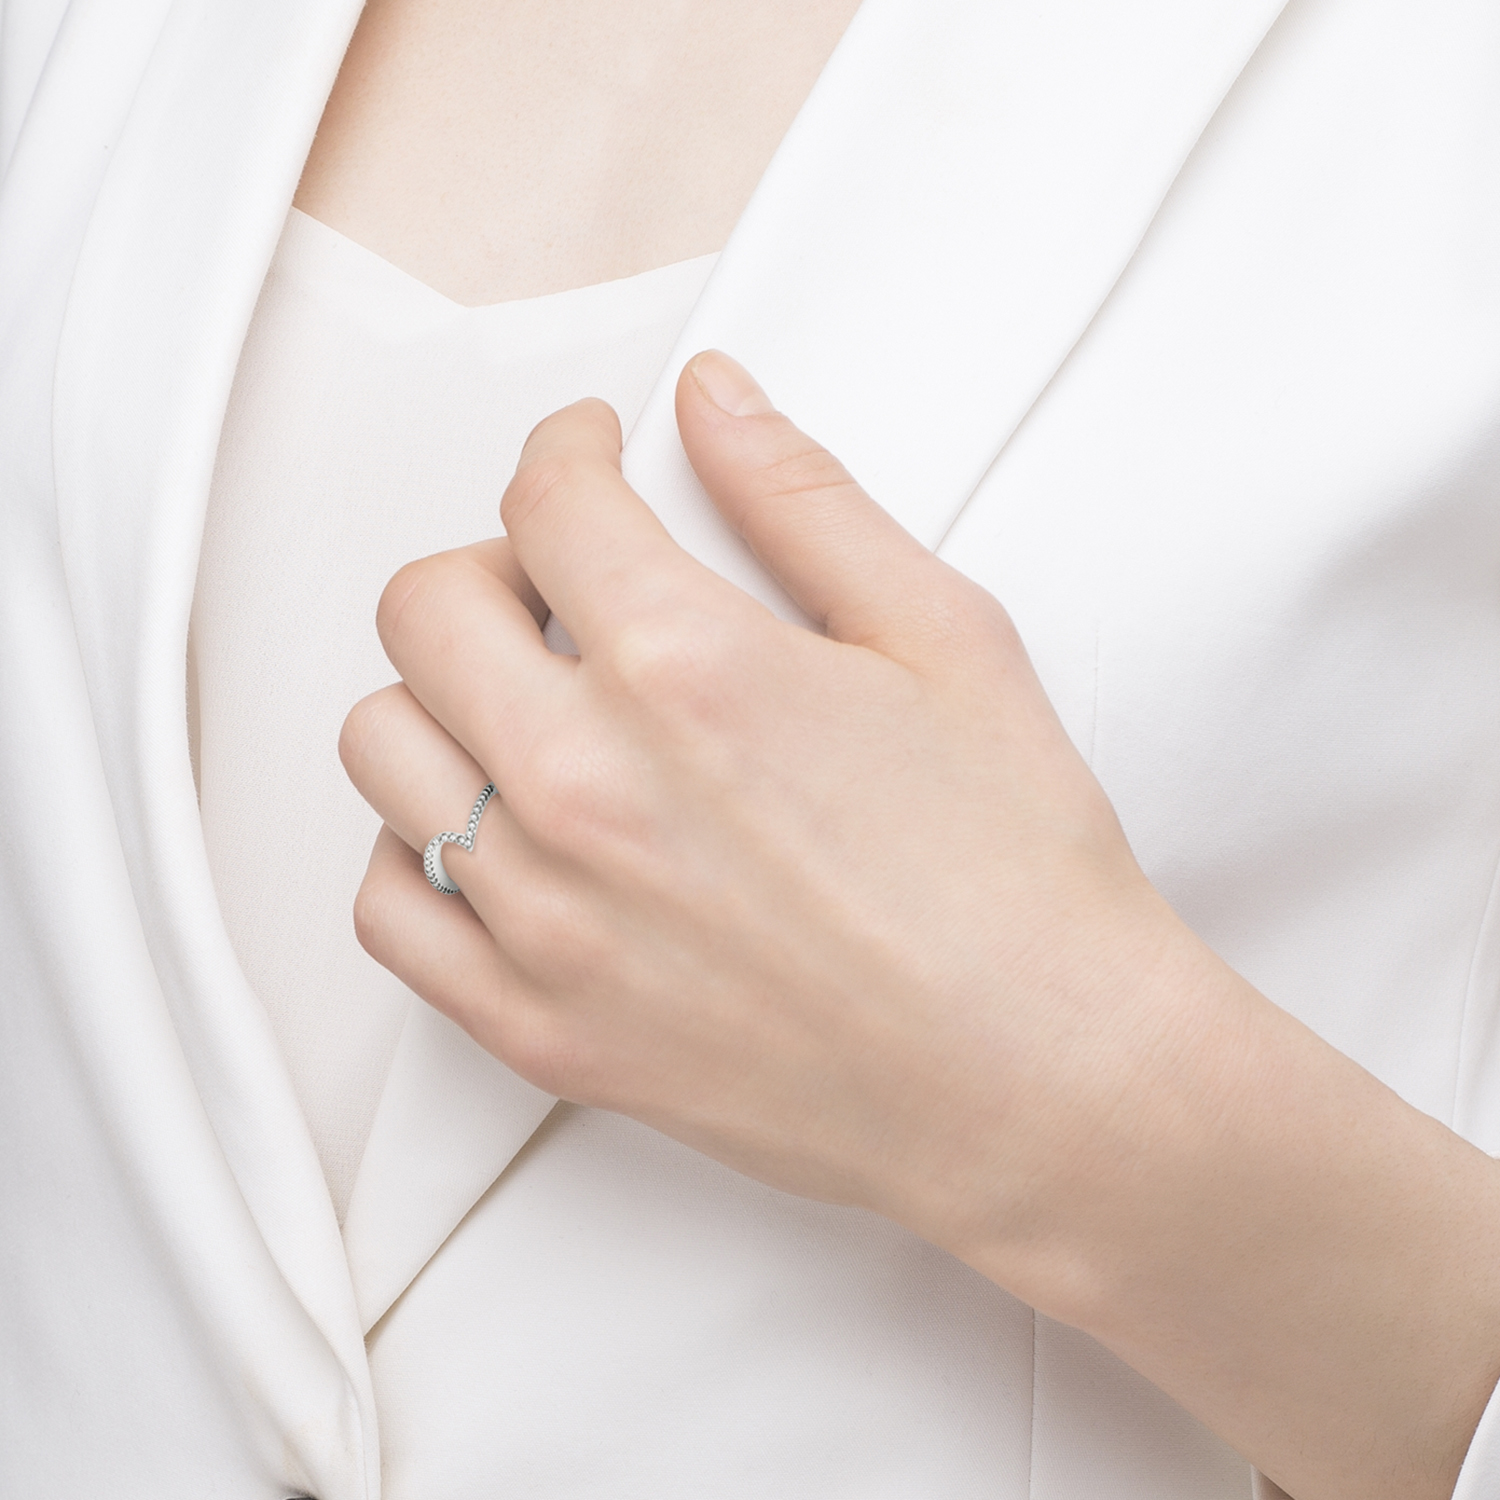 Contour Diamond Wedding Band Prong Set in 14k White Gold 0.25ct